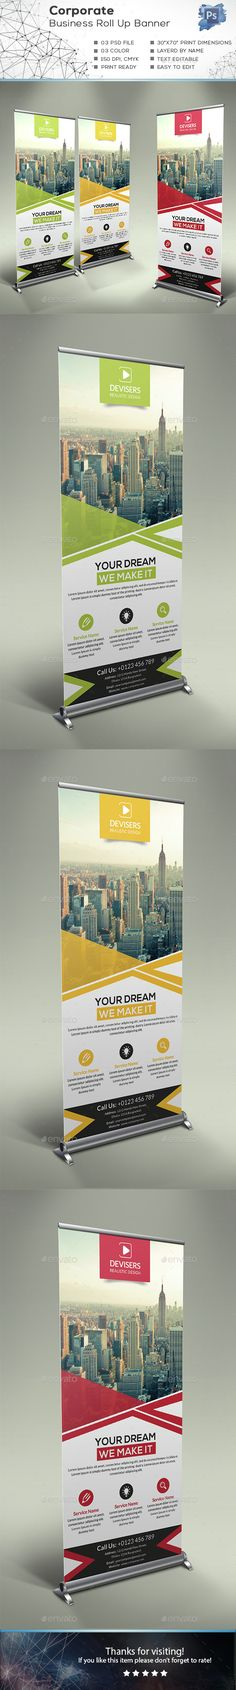 Corporate Business Roll Up Banner — Photoshop PSD Pop Up Banner, Web Banner, Banner Template, Flyer Template, Signage Design, Brochure Design, Banner Design, Branding Design, Corporate Flyer